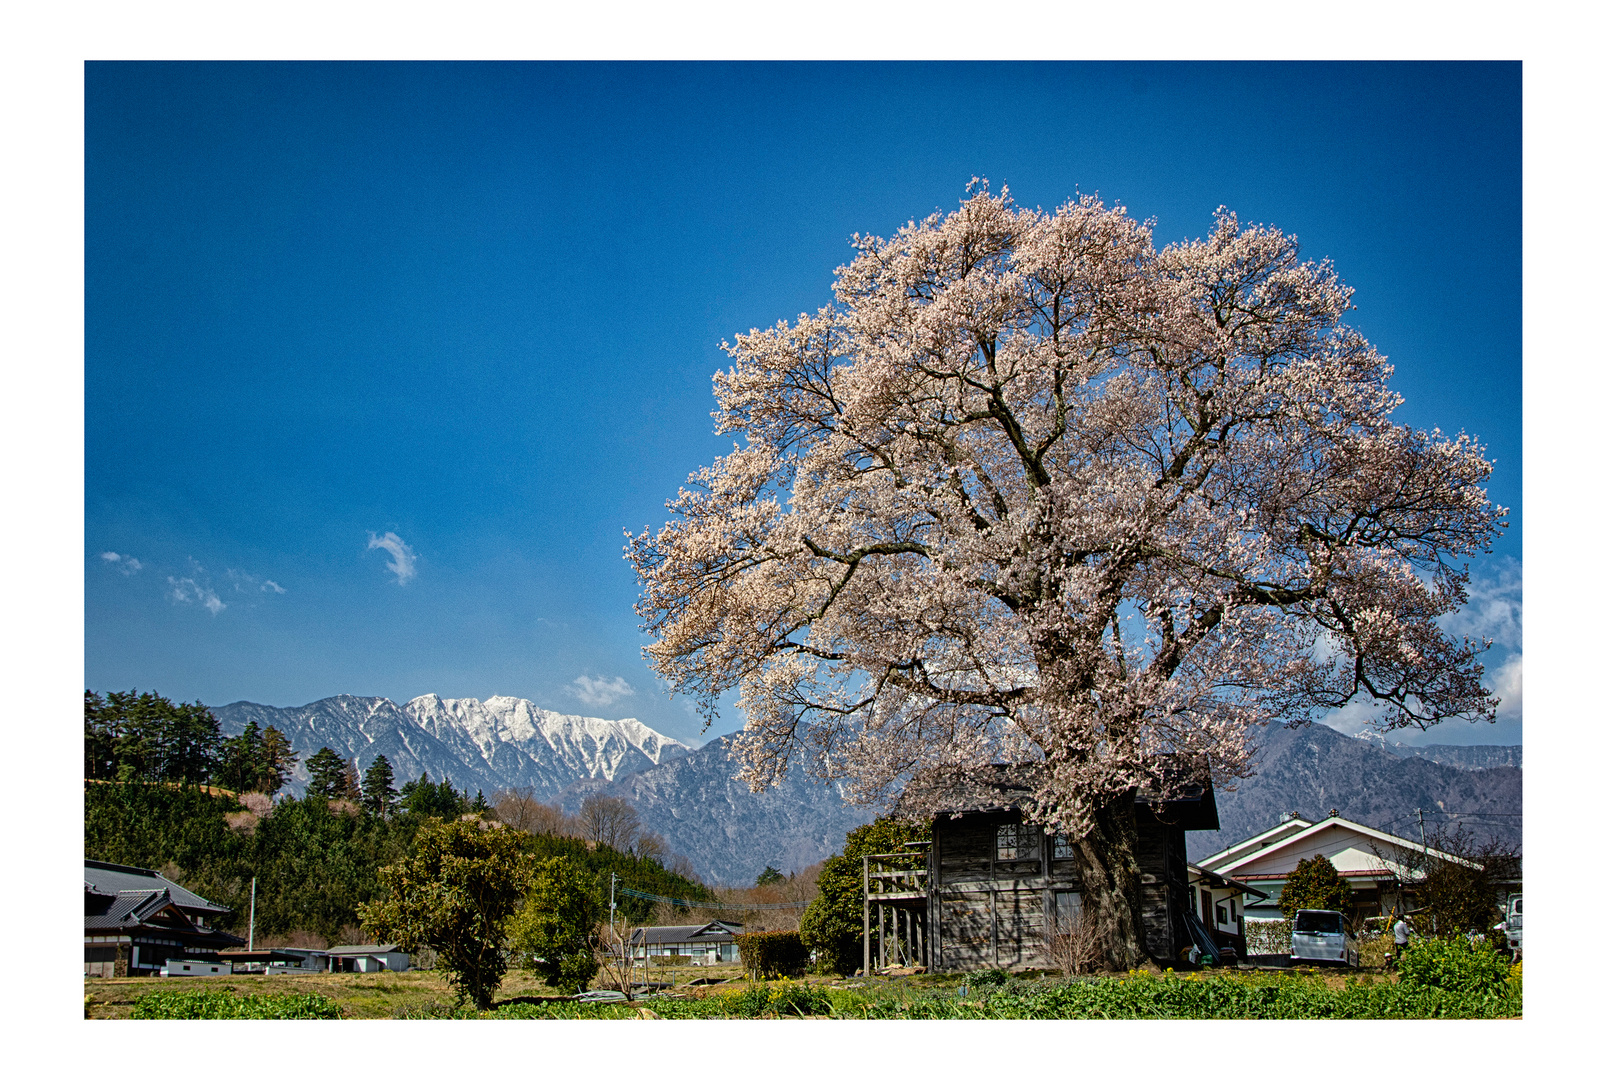 Blooming in a mountain village